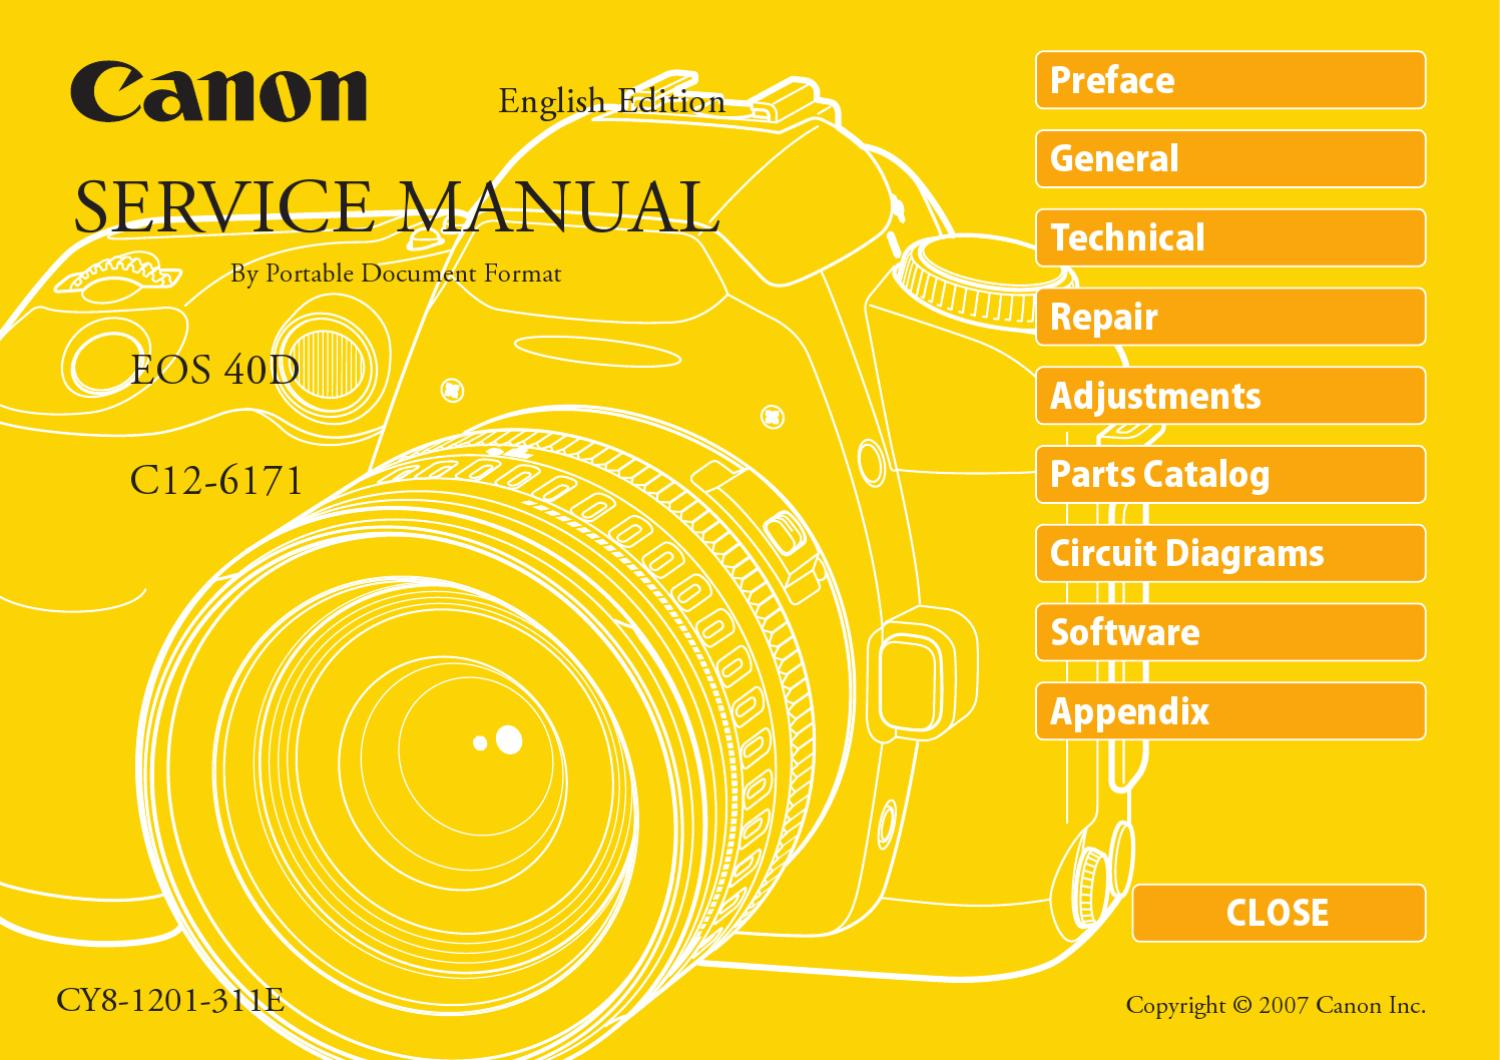 Canon Eos 40D Service Manual Repair Guide by Anh Tran   issuu